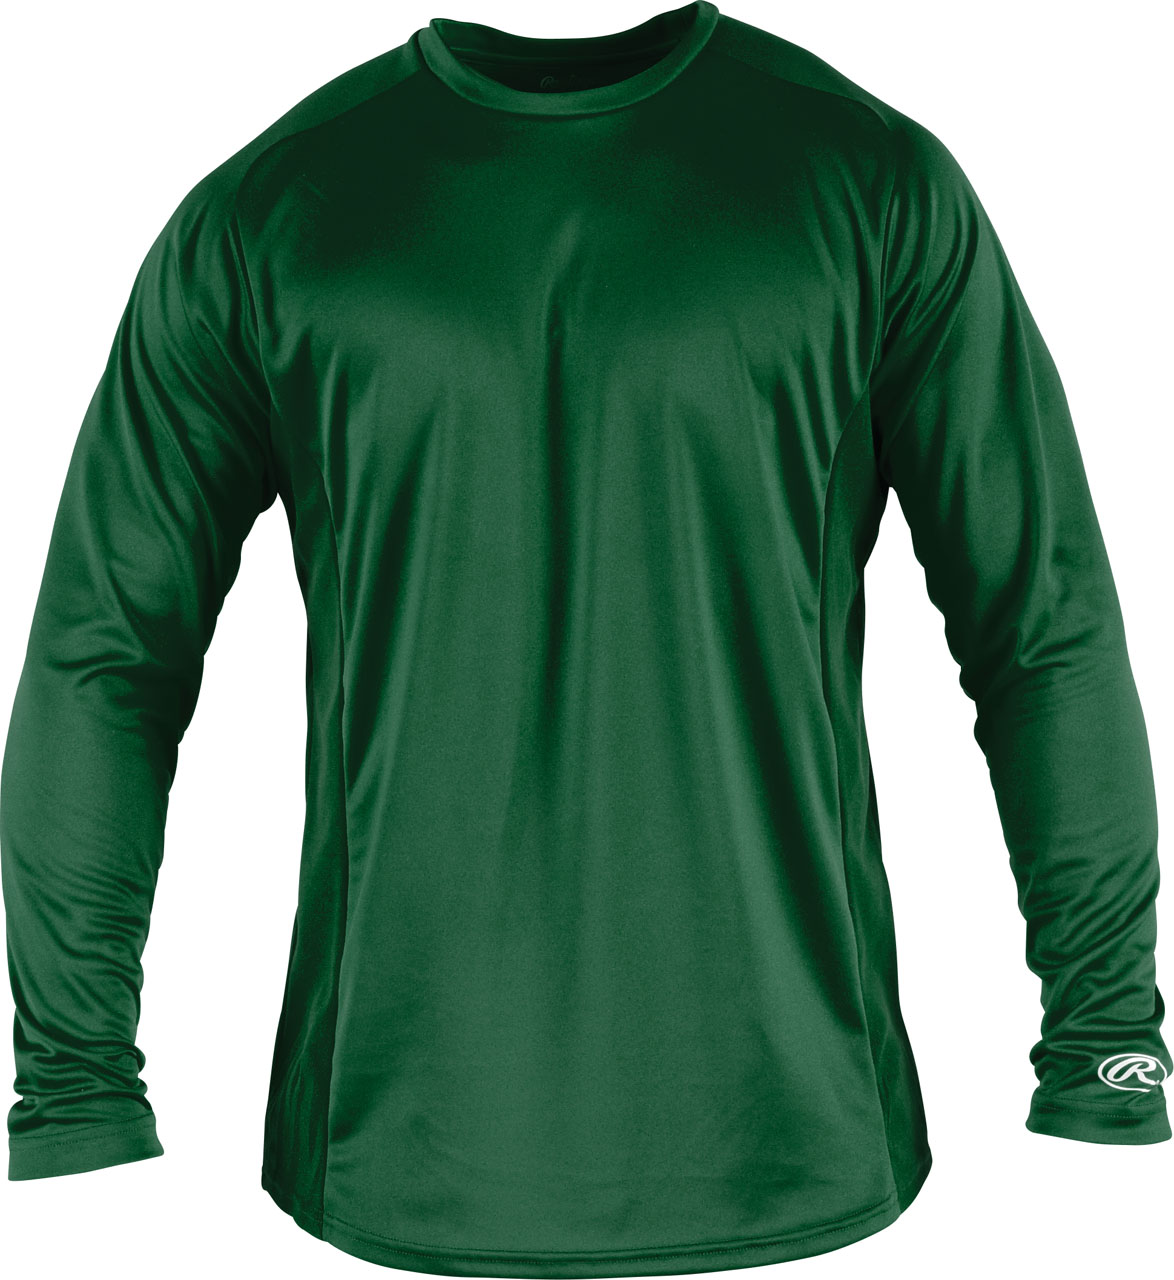 Picture of Rawlings Youth Long-Sleeve Crew